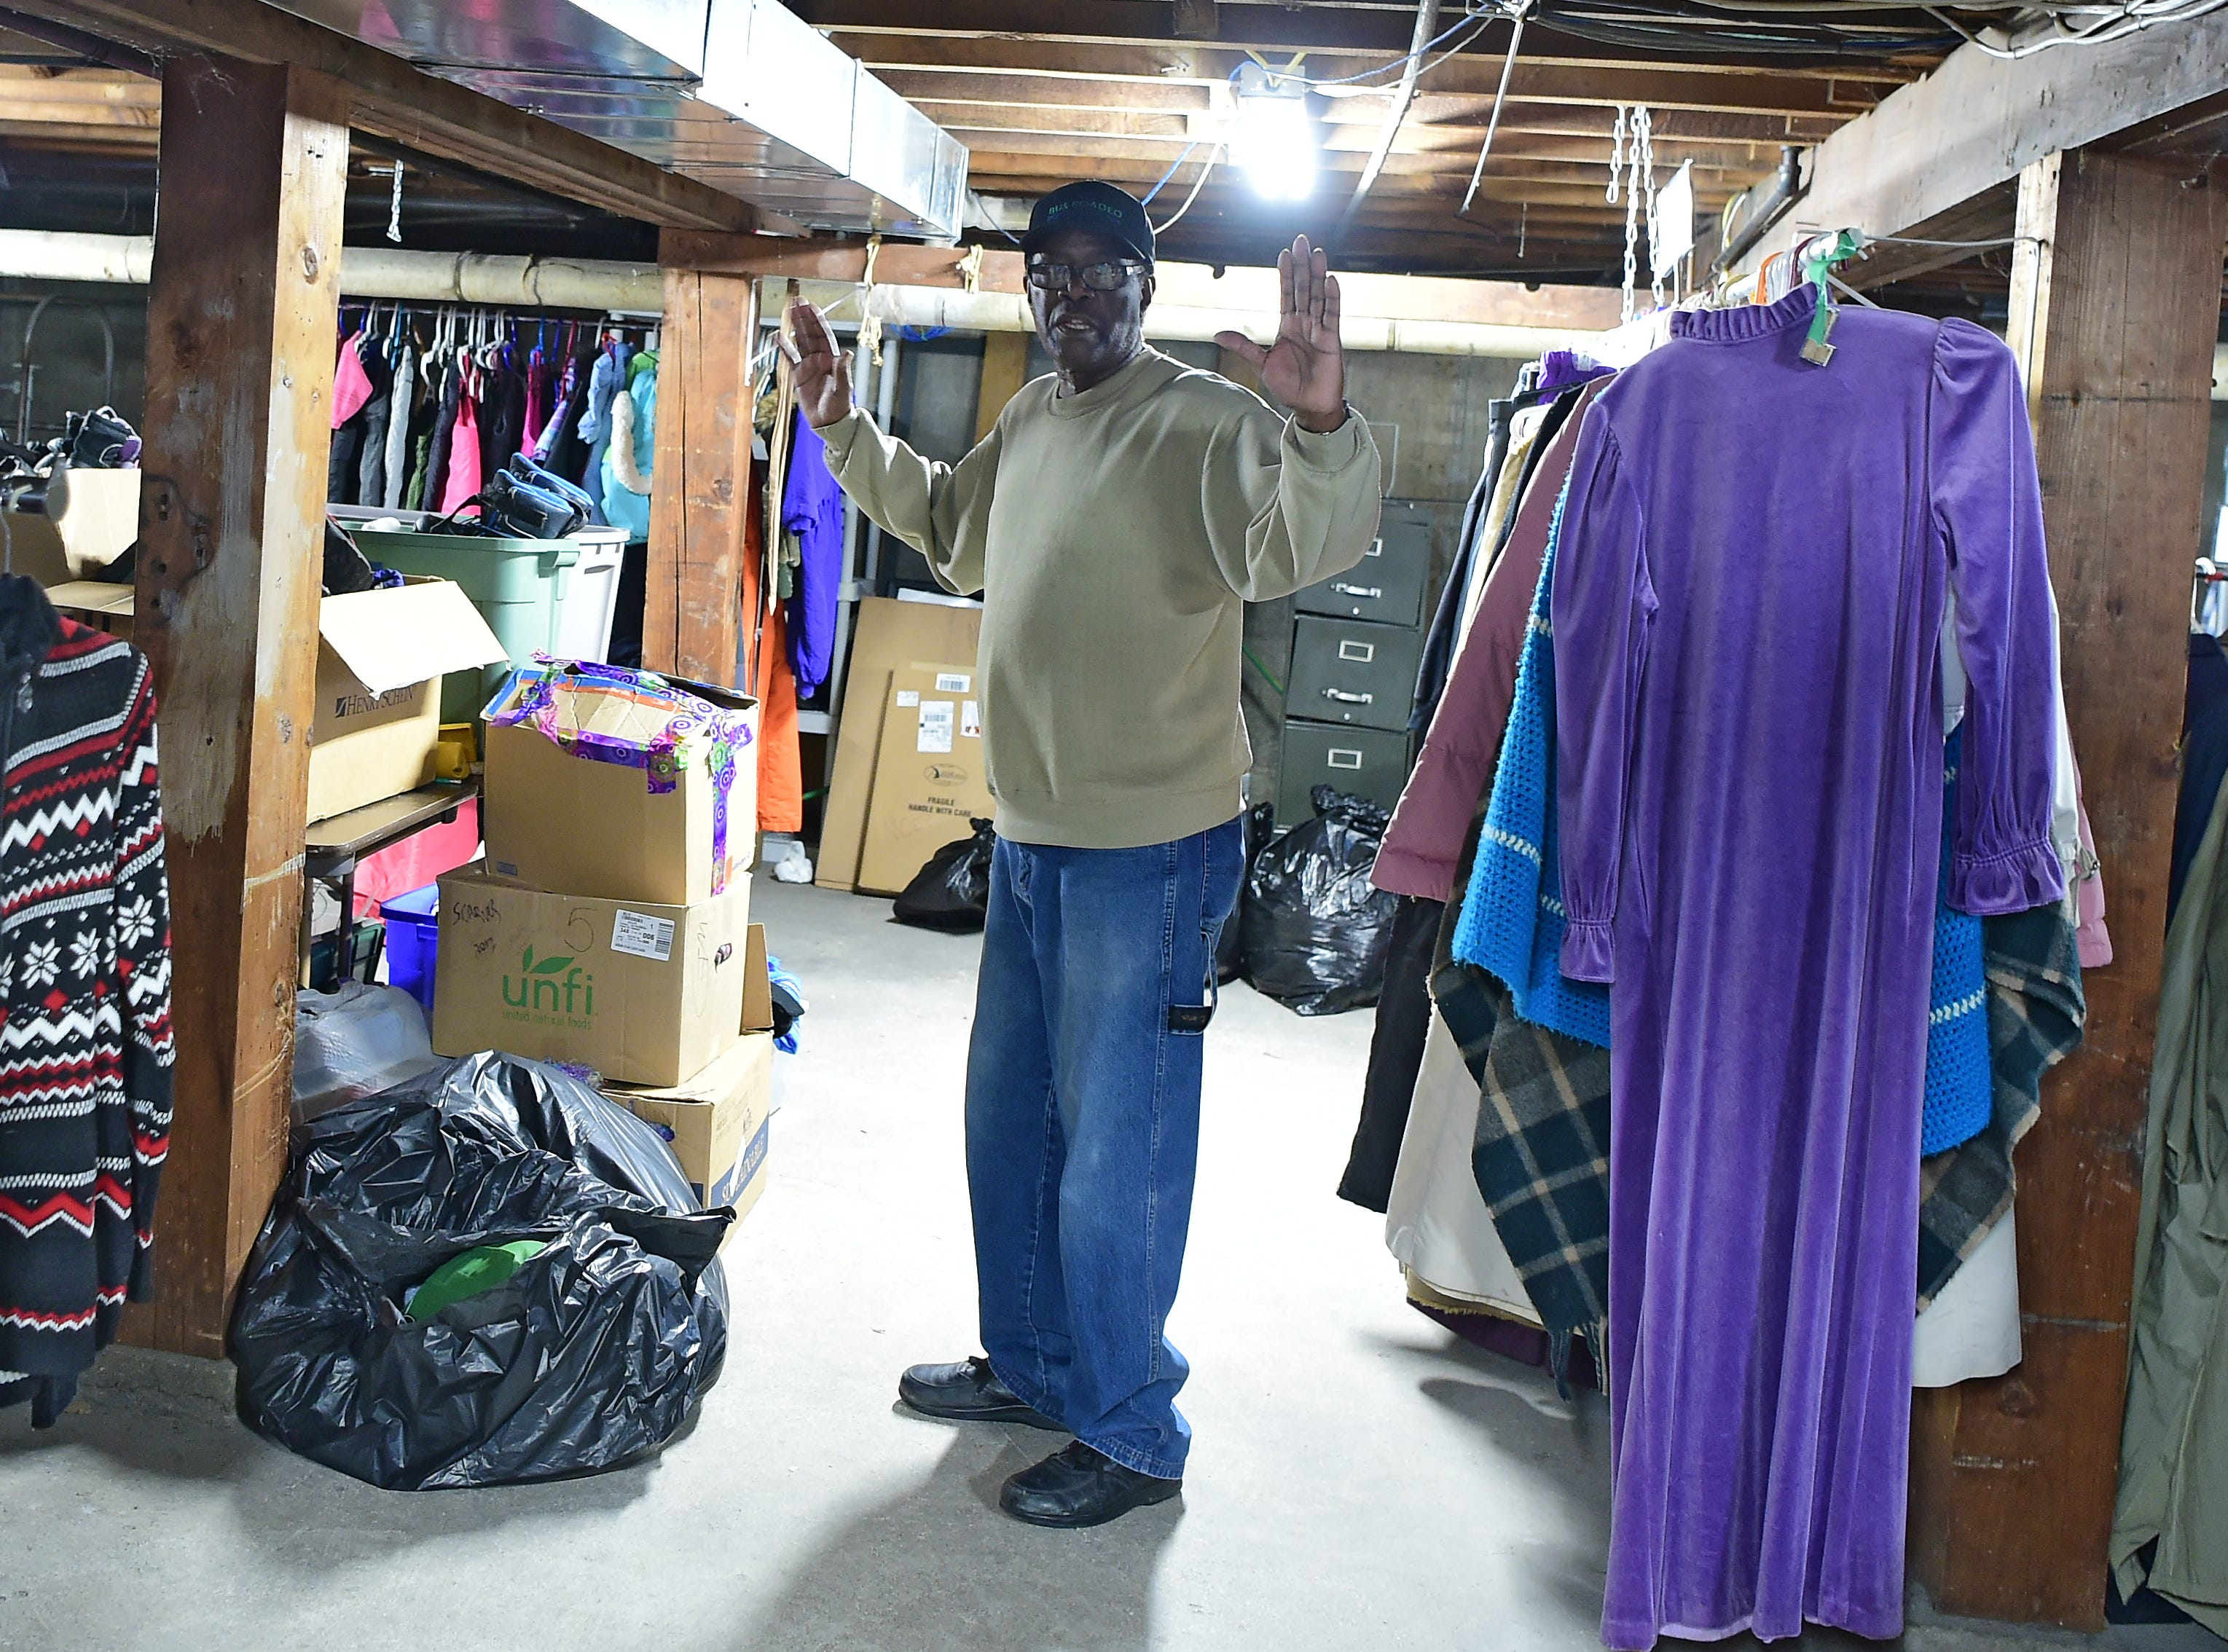 Emmanuel McBean with some of the donated winter clothes. Catholic Charities of Tompkins/Tioga staff and volunteers work at readying winter clothing donations in Ithaca on Thursday, November 29, 2018.